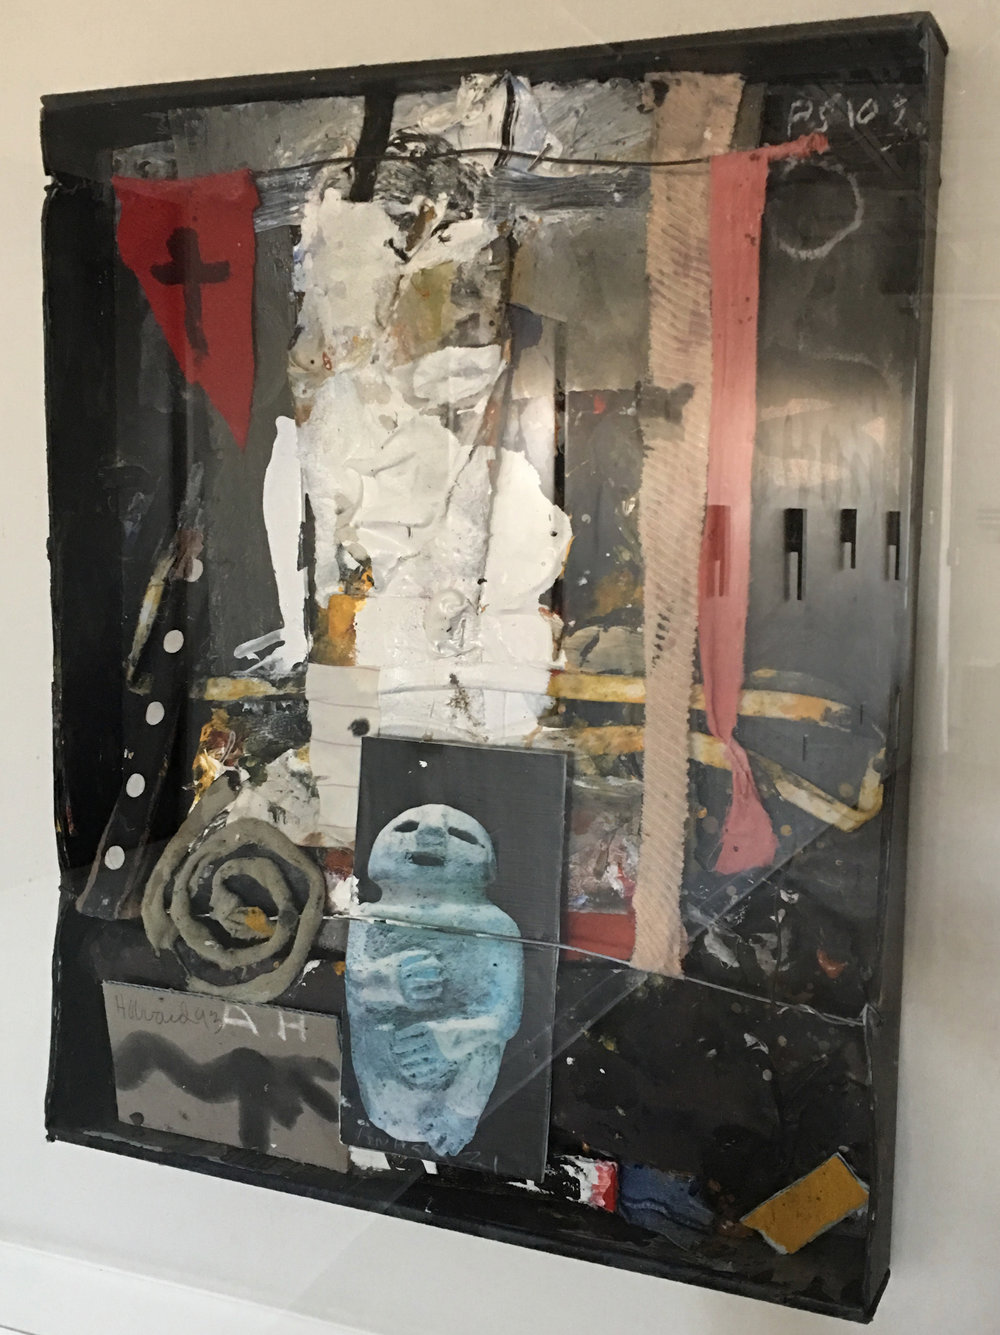 James Havard  Anasazi , 1993 Collage and mixed media in plexiglass box 21 x 17 inches object, 30 x 26 inches box/frame